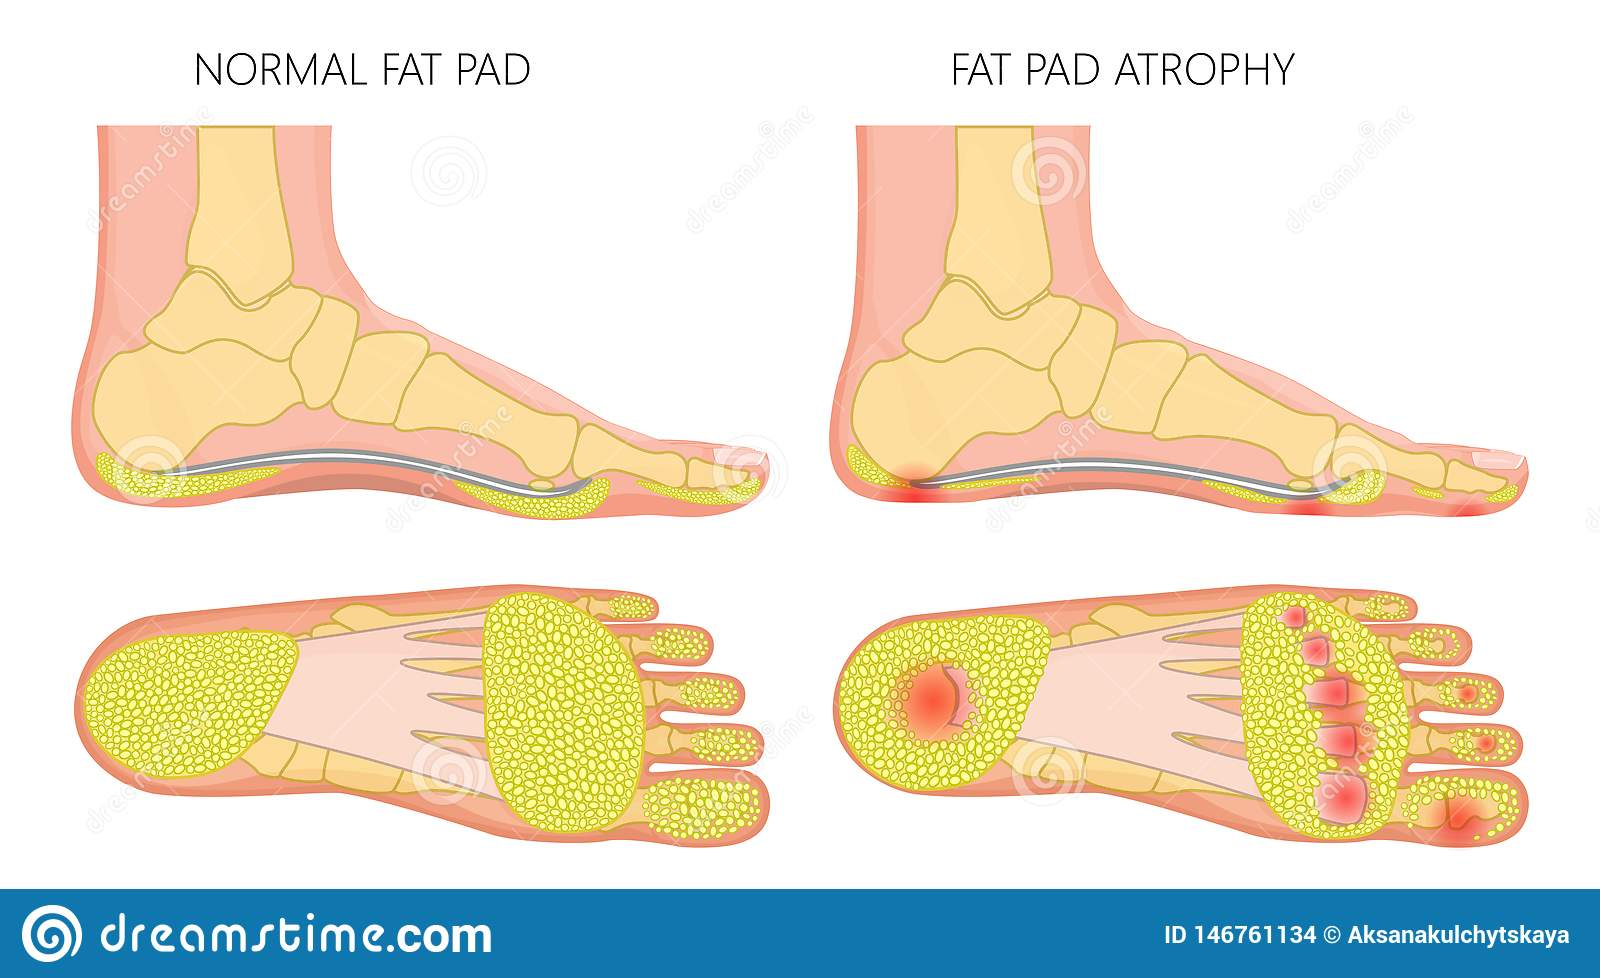 Foot fat pad atrophy stock vector. Illustration of balls ... Foot Diagram on foot odor, foot index, foot and ankle, foot pain, foot structure, foot schematic, foot problems, foot regions, foot type chart, foot outline, foot assessment form, foot tendons, foot cartoon, arches of the foot, joints of foot, foot parts, anatomical terms of location, foot muscles, foot side view, foot map, foot bones, foot drawing, fifth toe, foot toes,